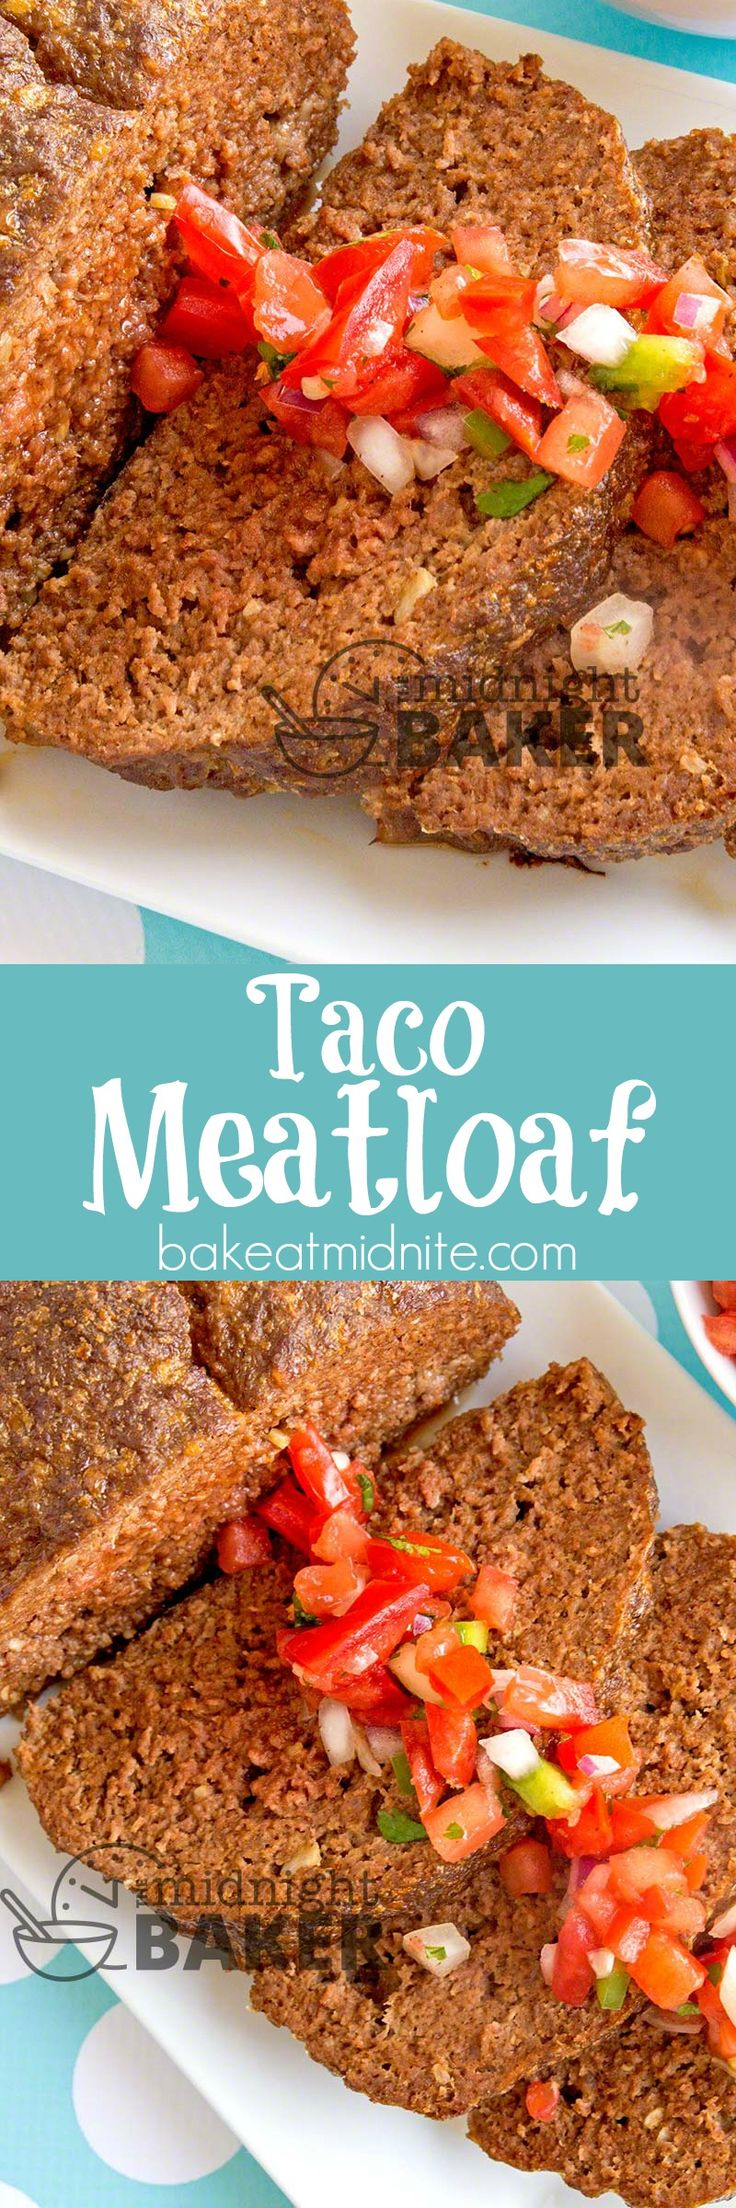 497 best South of the Border Foodie images on Pinterest | Recipes ...